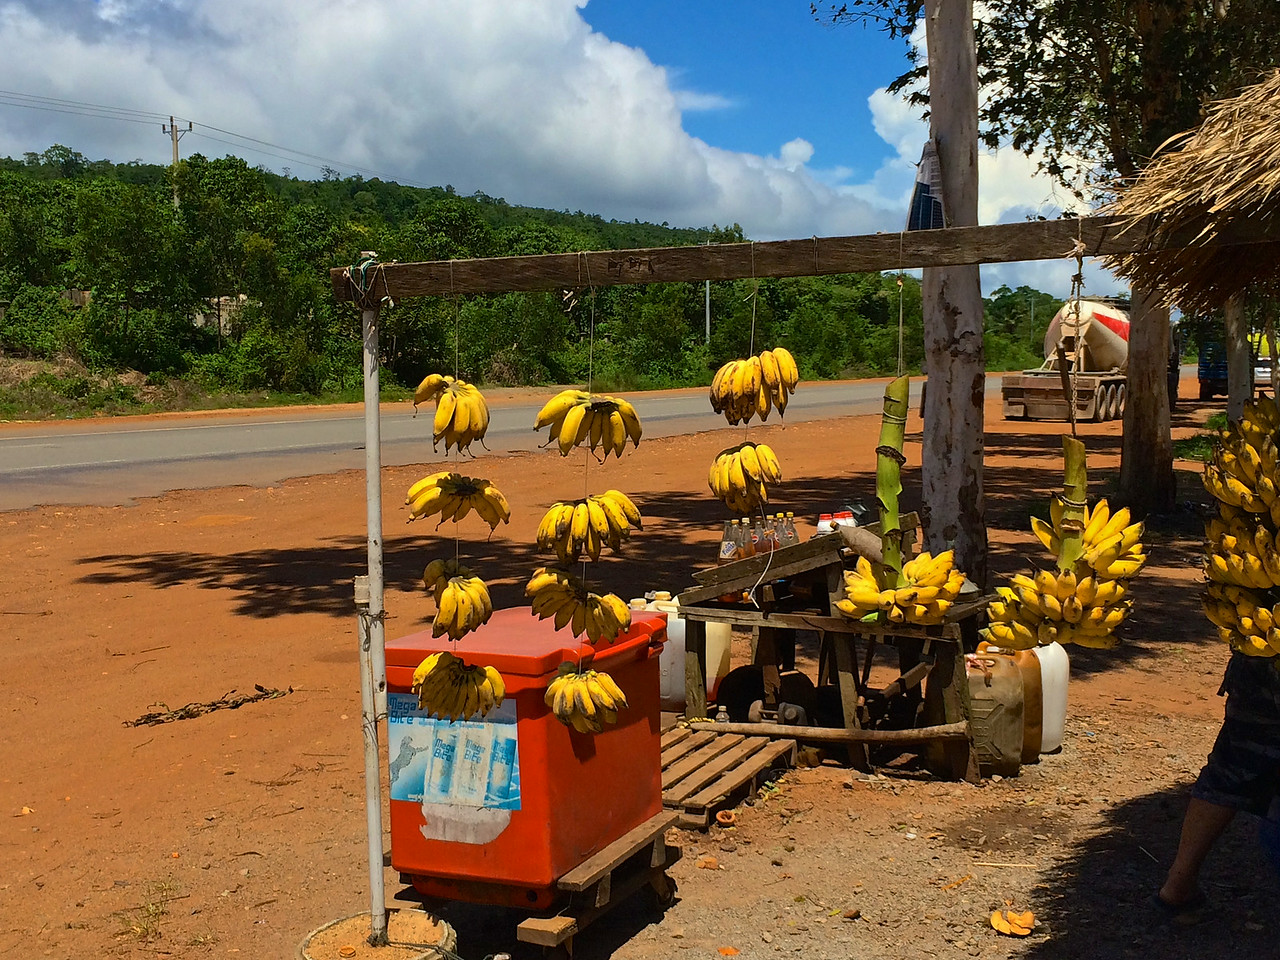 Fresh bananas are available in the parking lot.